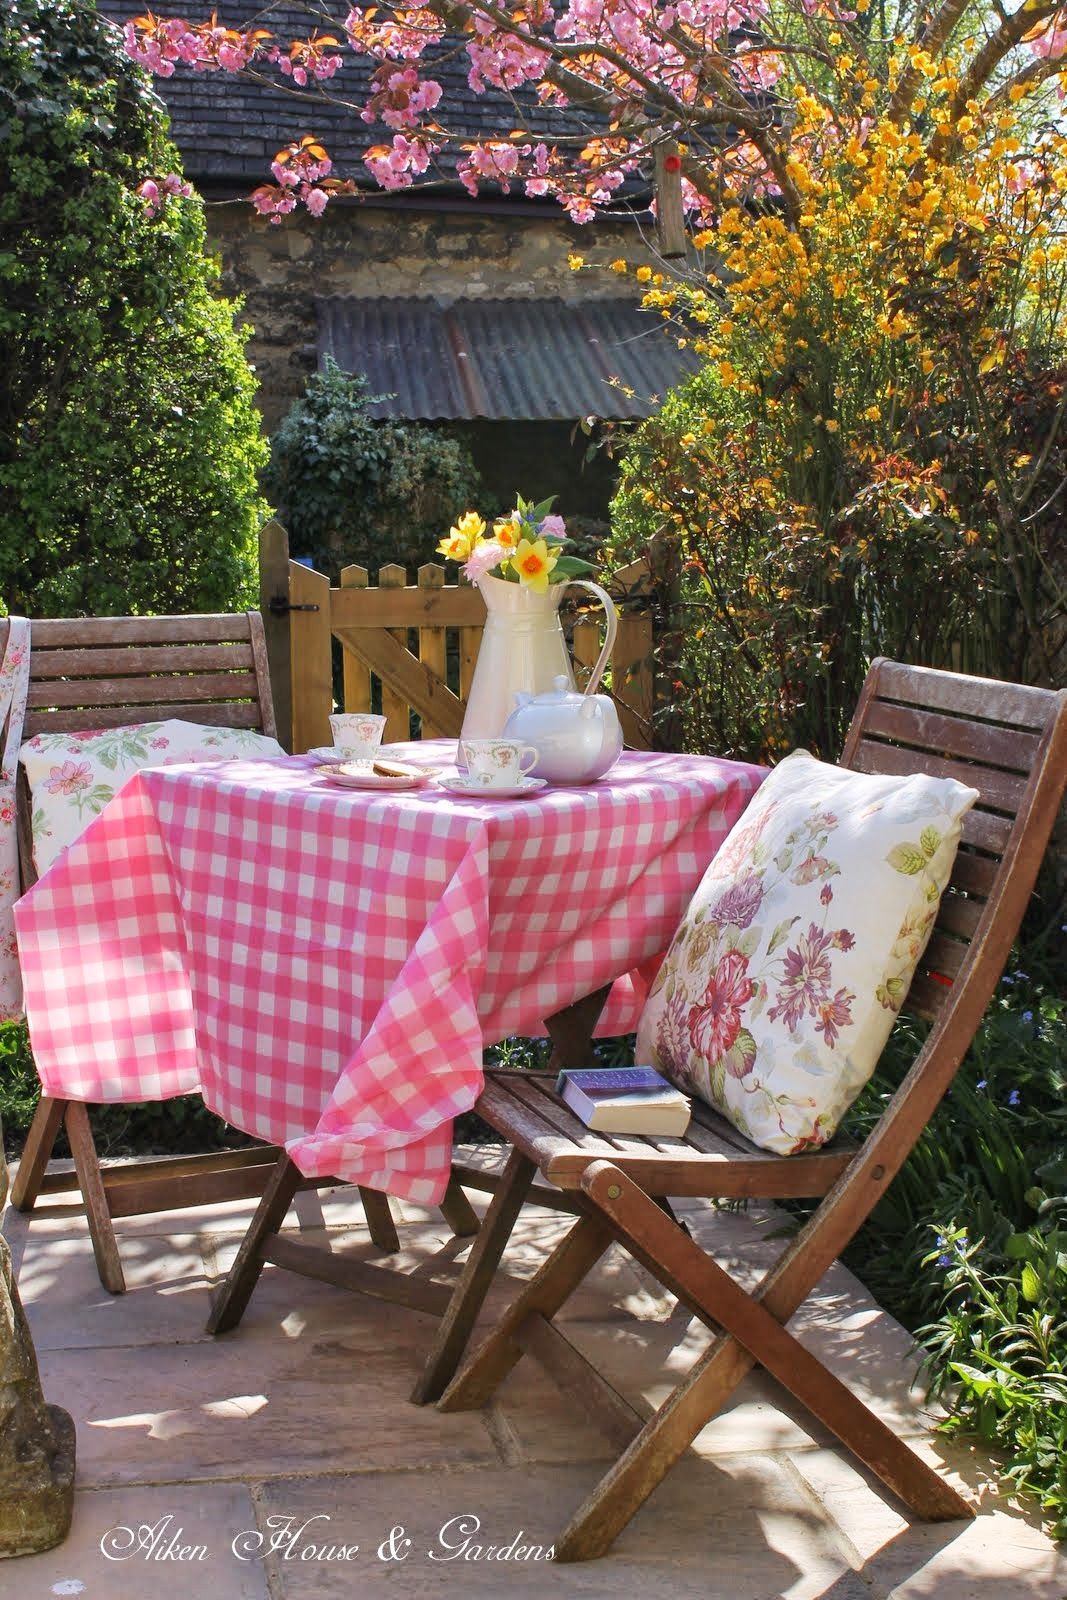 homebnc furniture for old best ideas garden cottage style outdoor